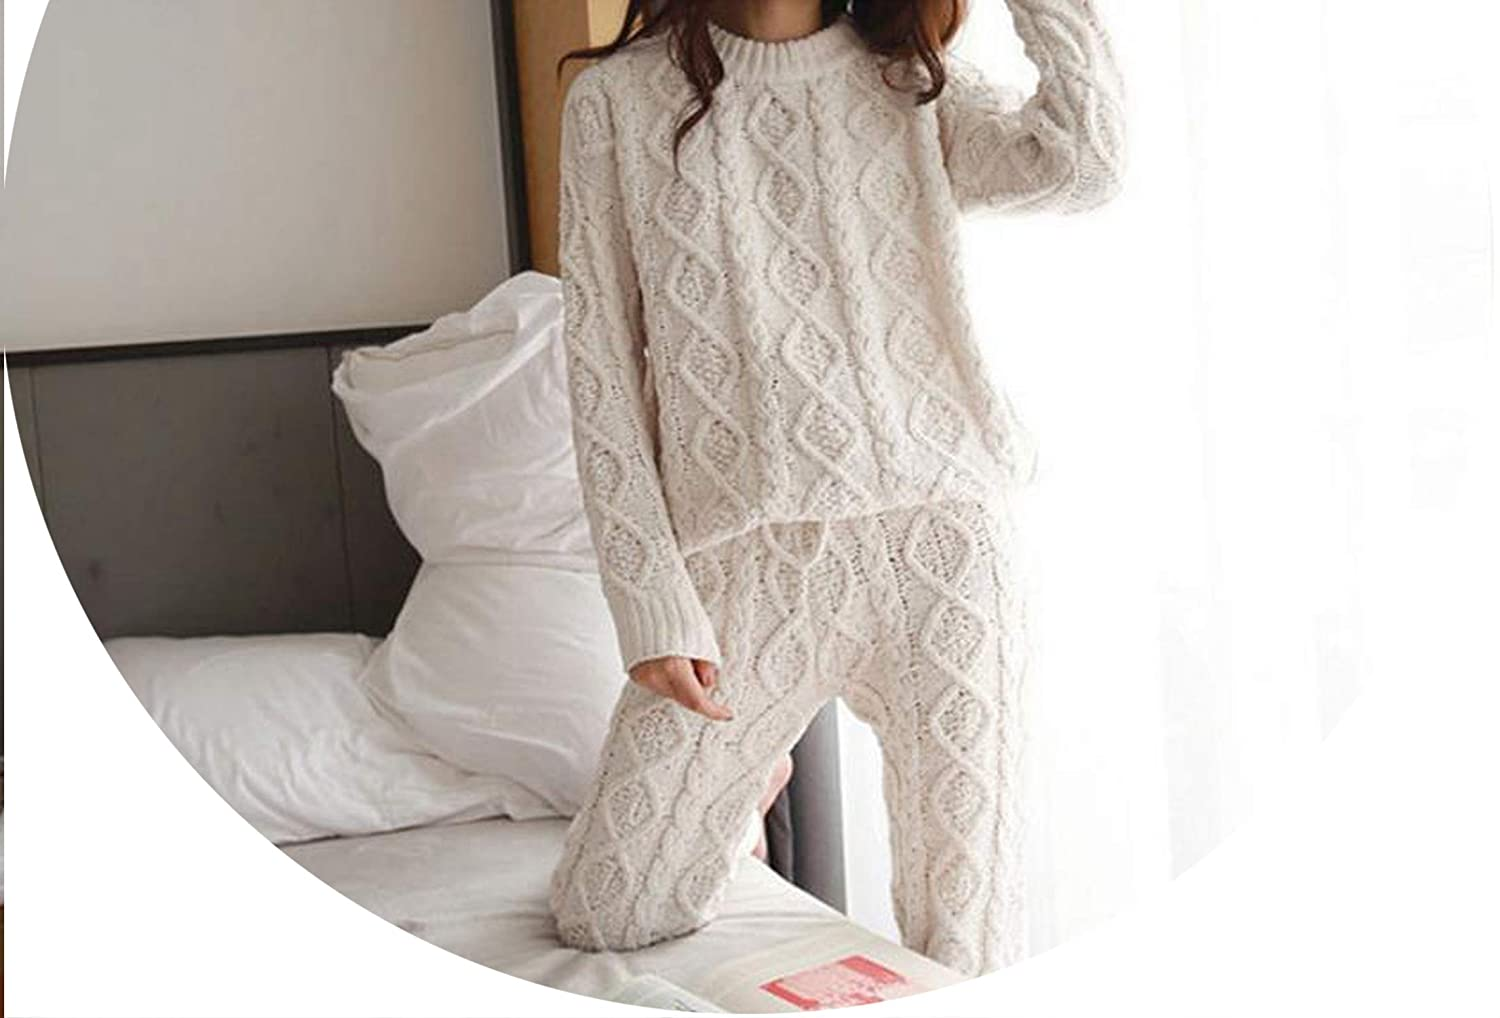 White Autumn Cottonwomen 2 Two Piece Set Sweater Top+Pants Knitted Suit O Neck Twinset Outwear